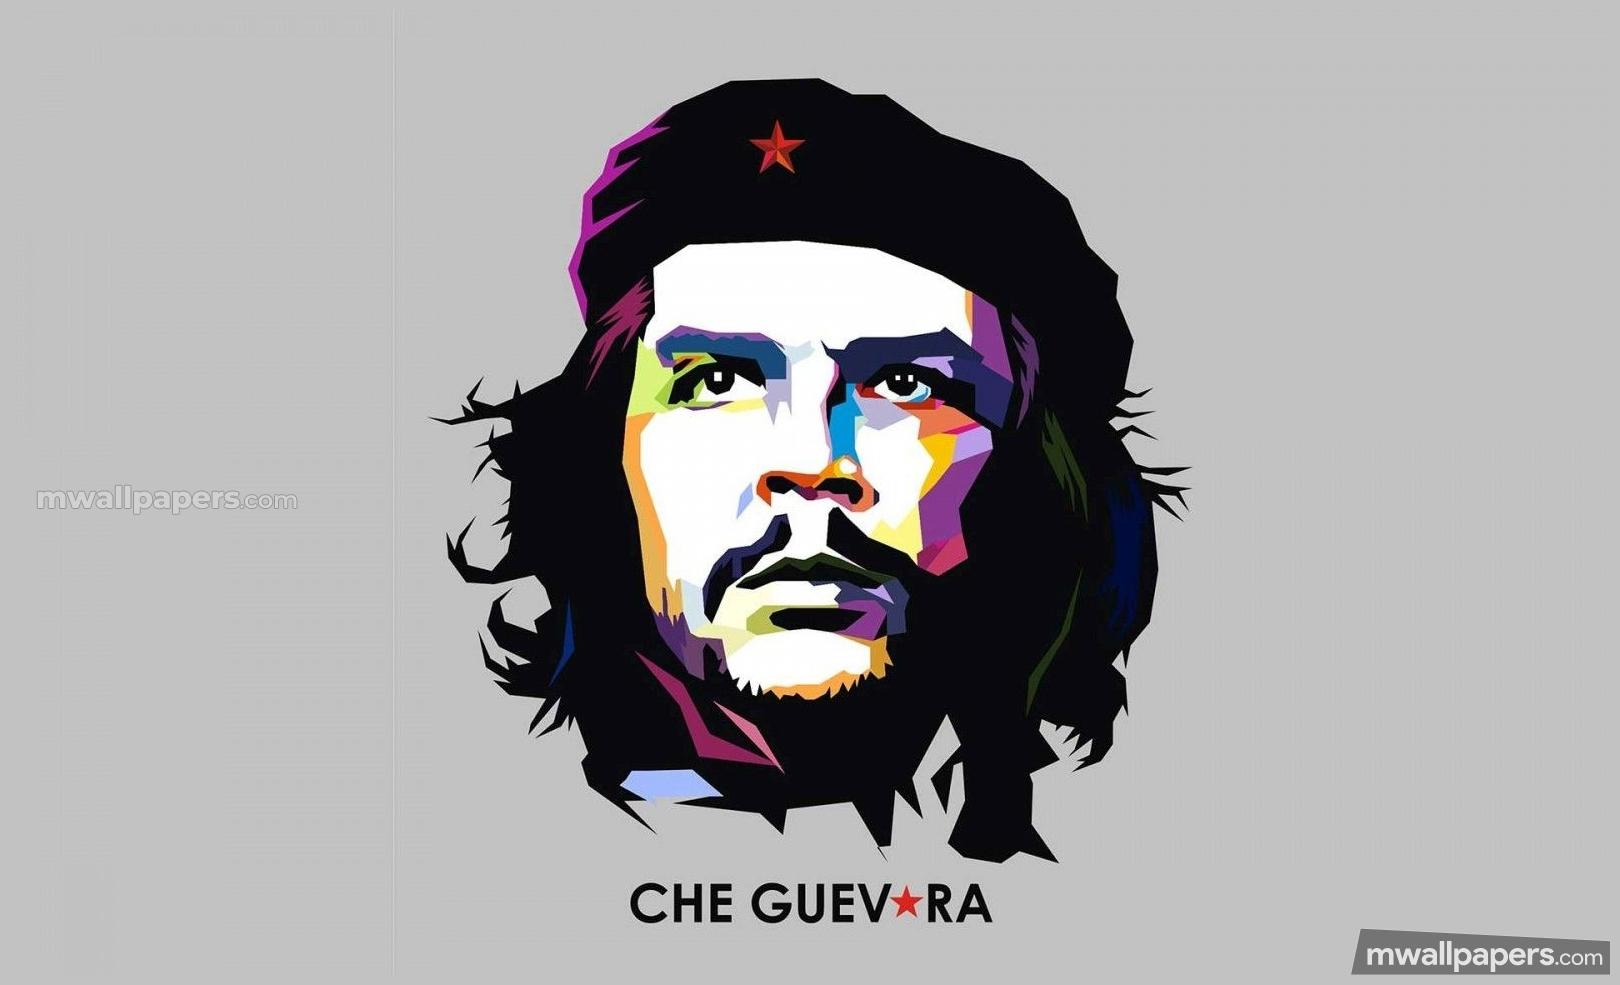 Che Guevara Wallpapers HD Best HD Photos p